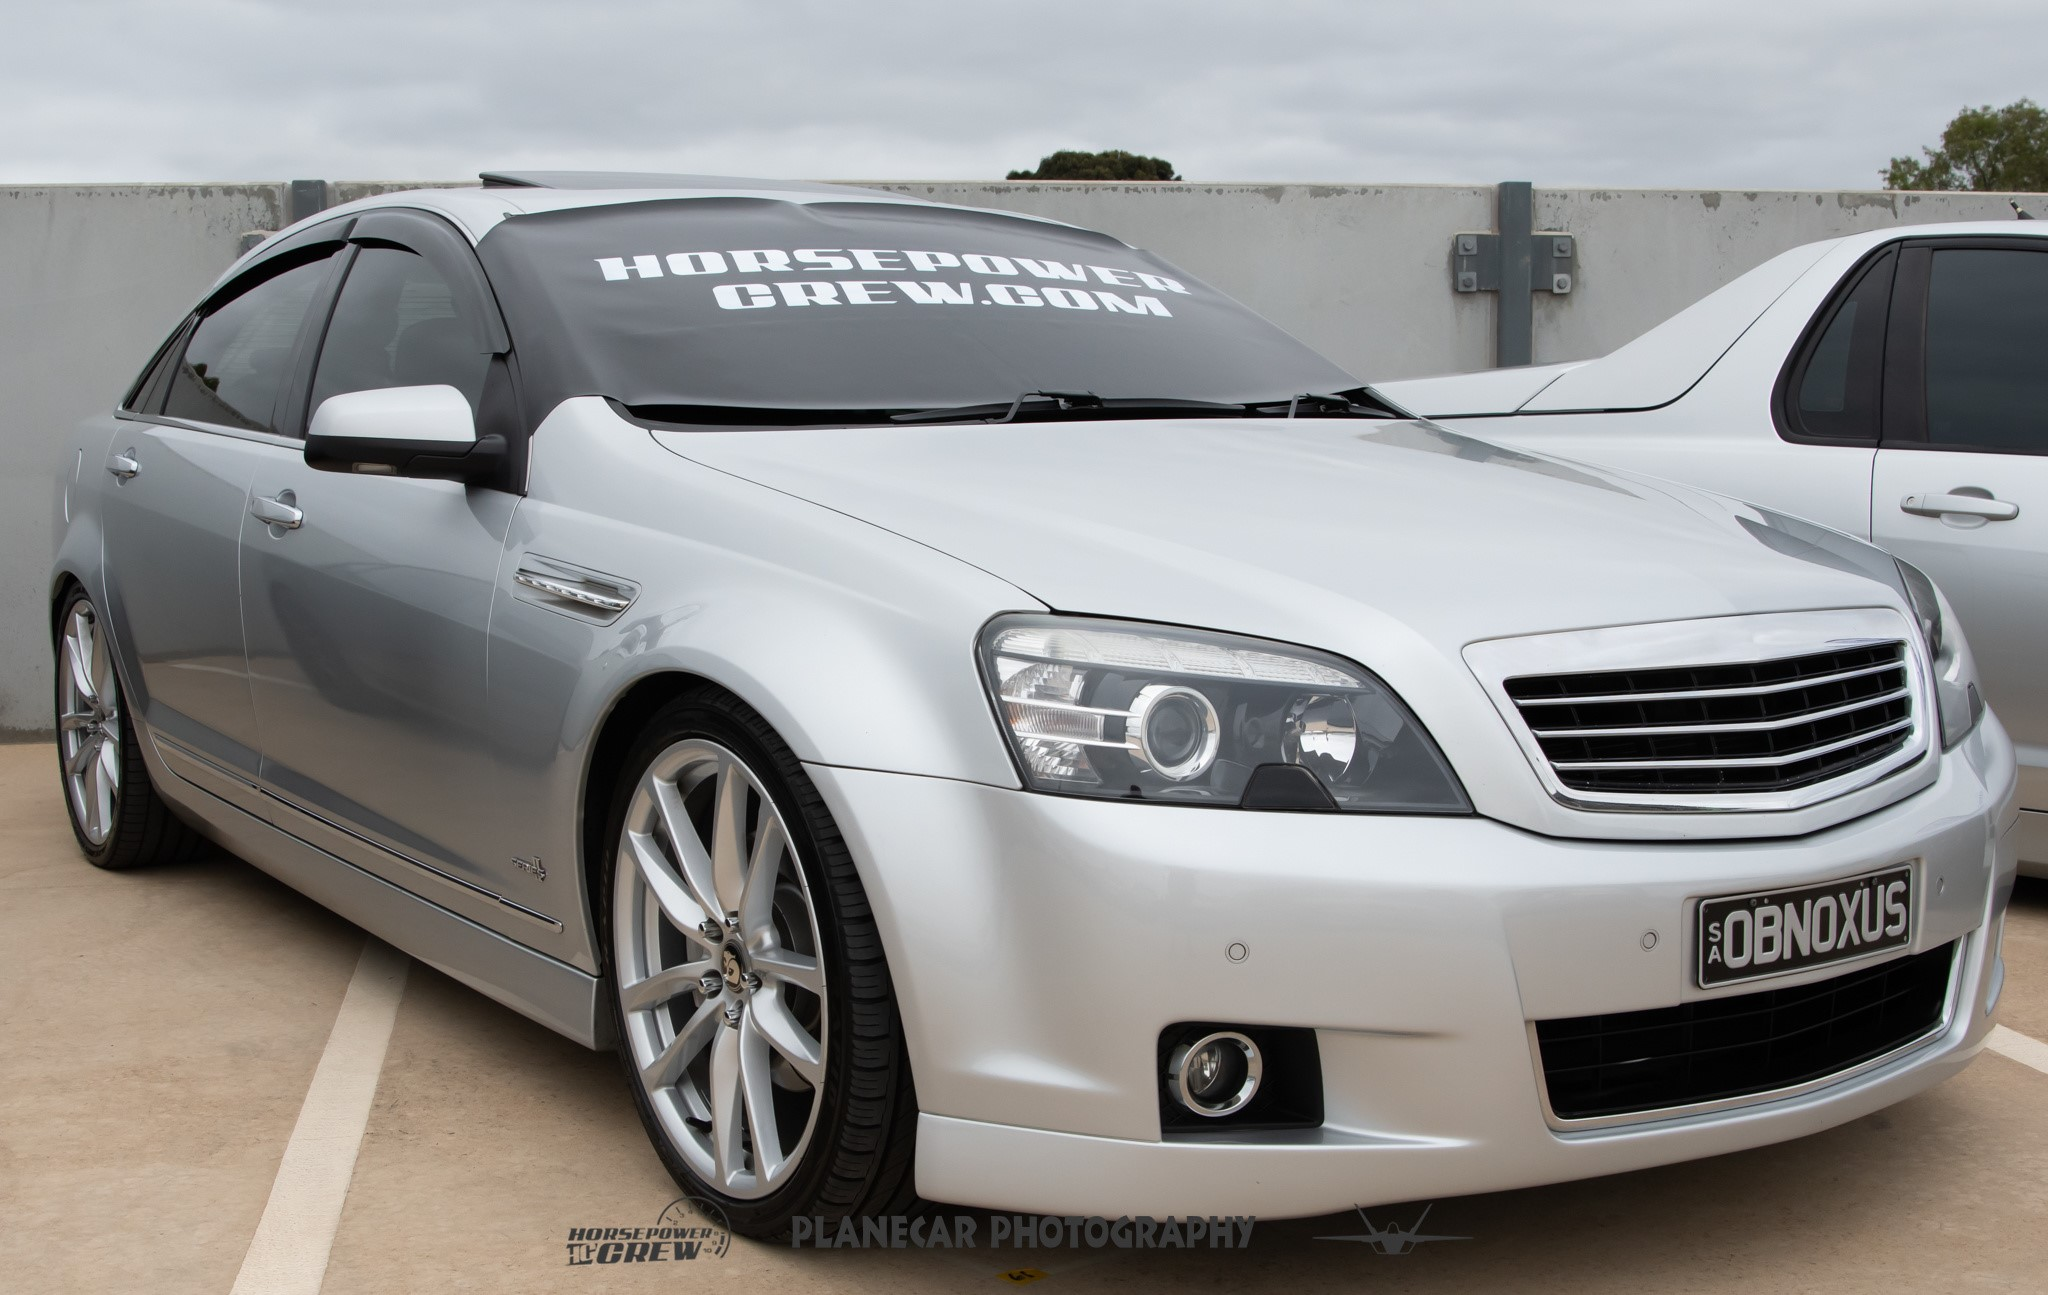 windscreen-cover-dot-com-modern-size-black-with-white-writing-silver-Holden